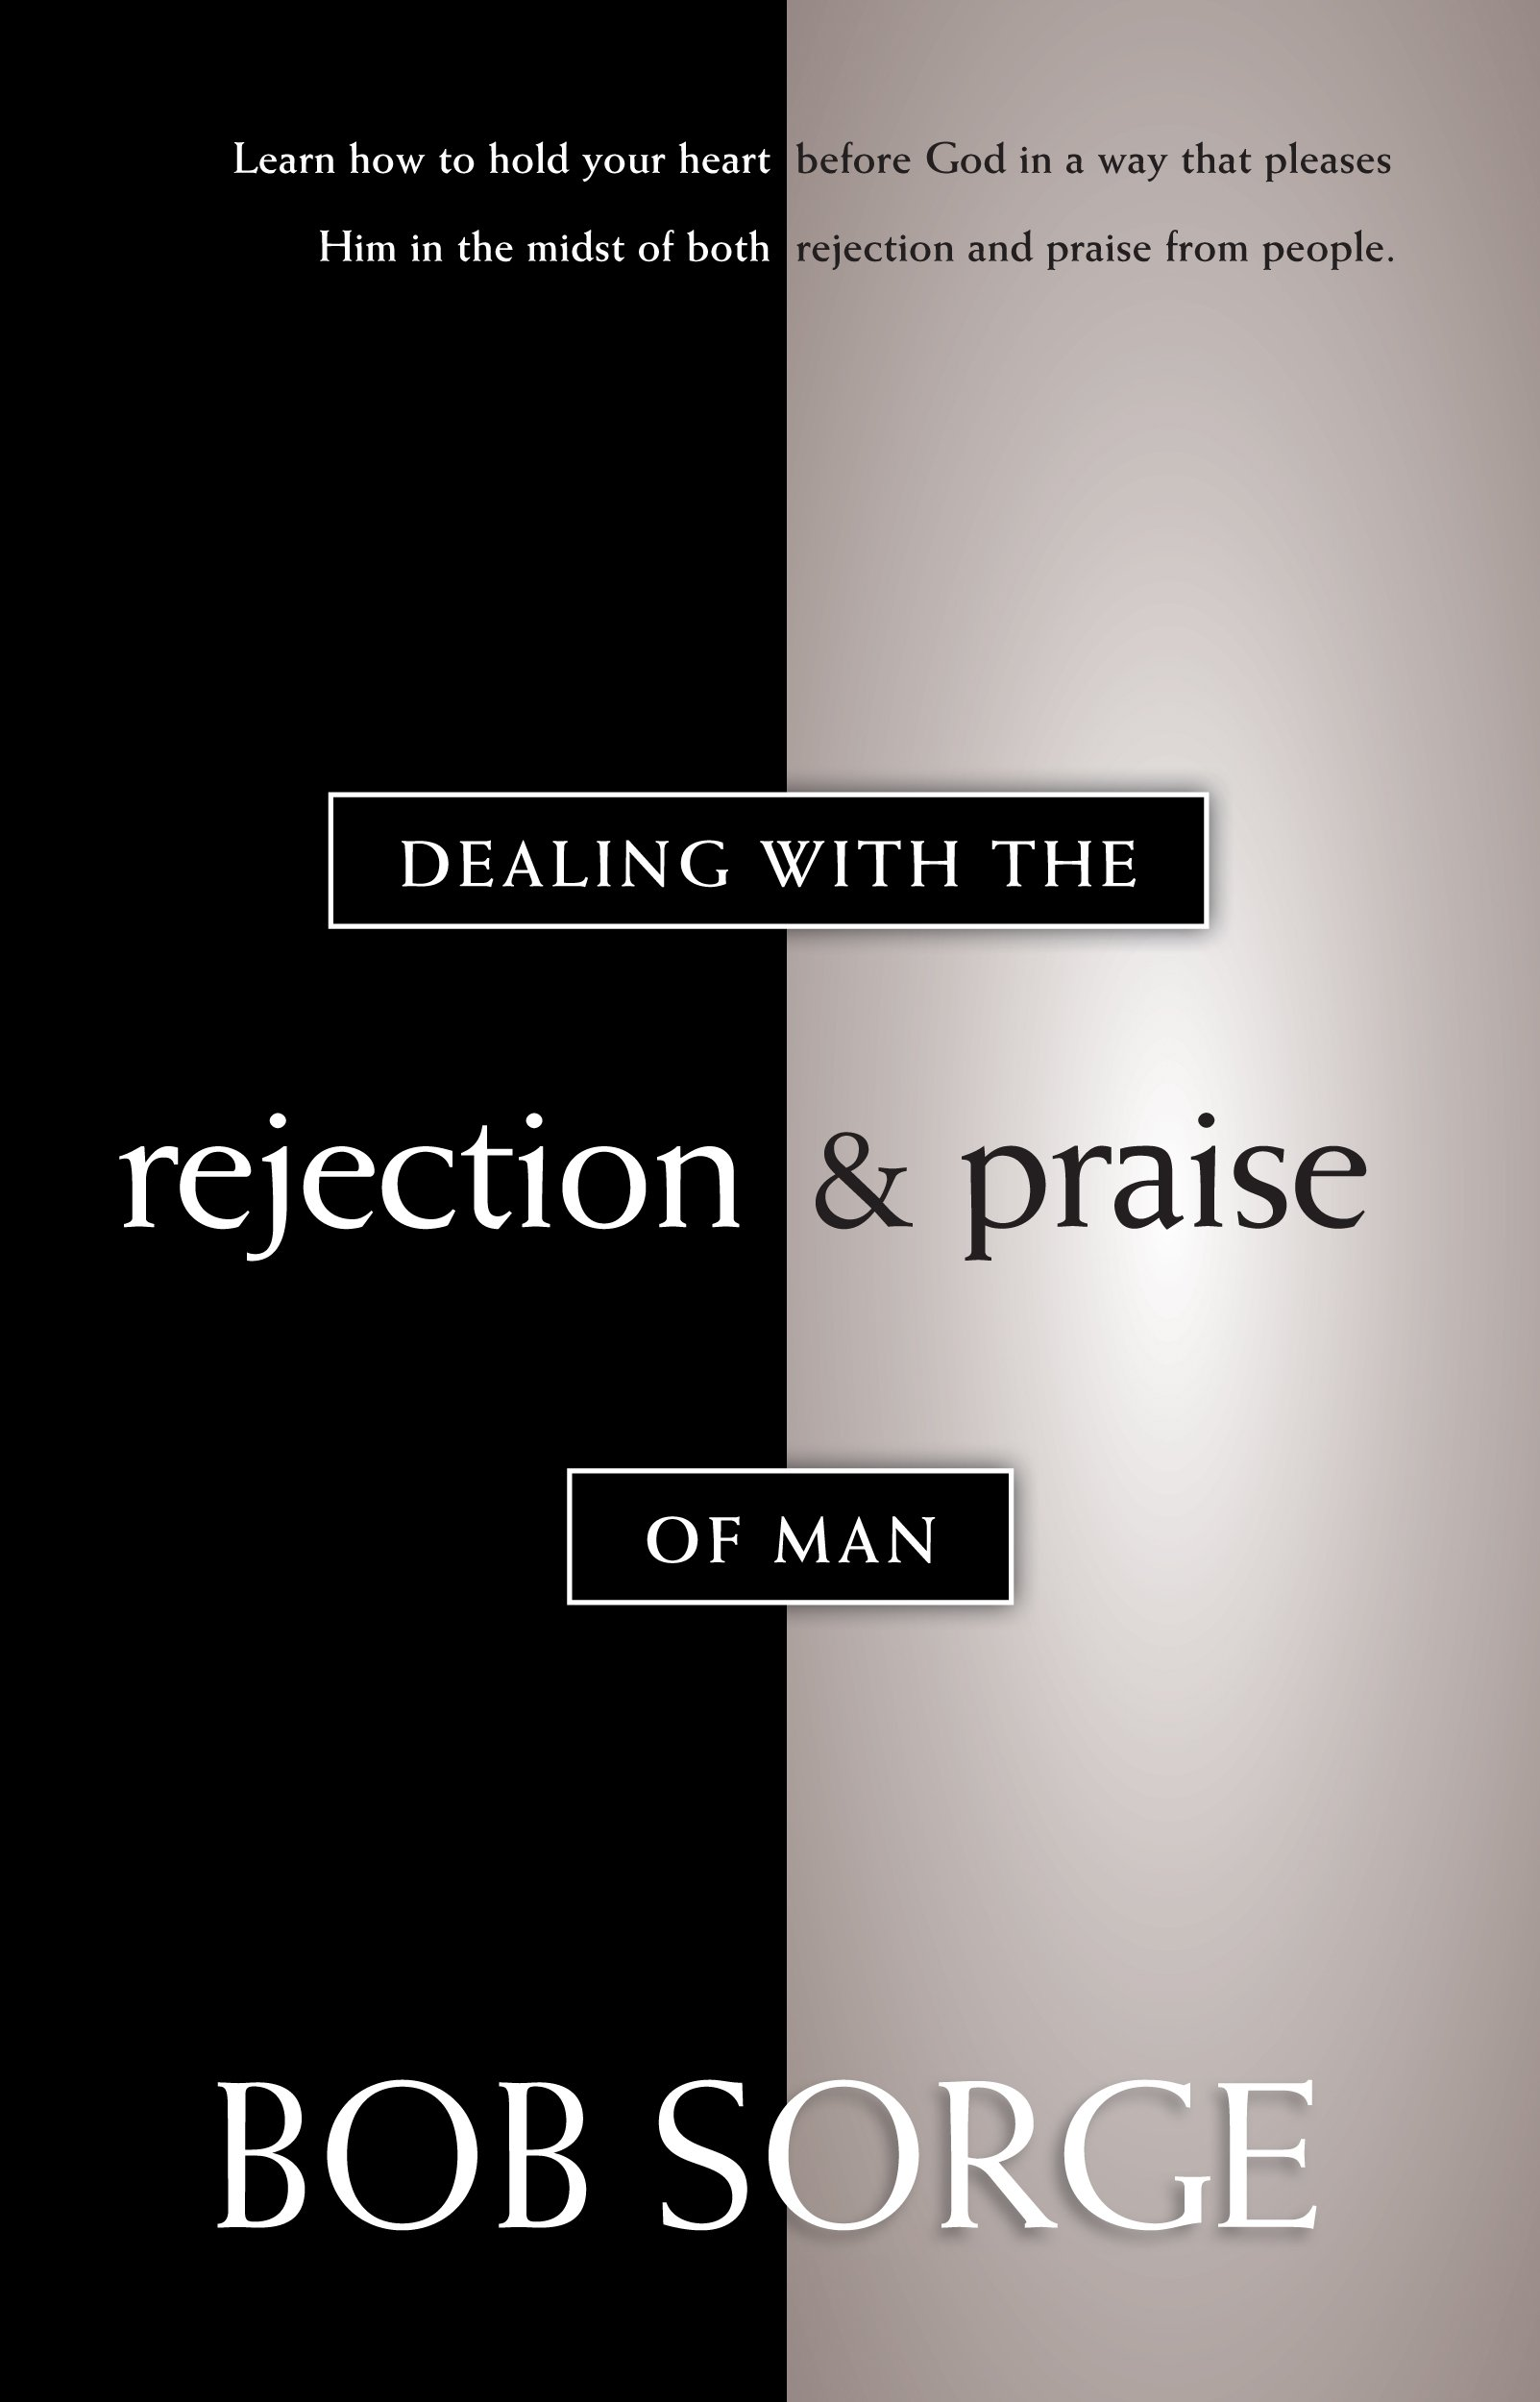 Dealing with the Rejection and Praise of Man: Bob Sorge